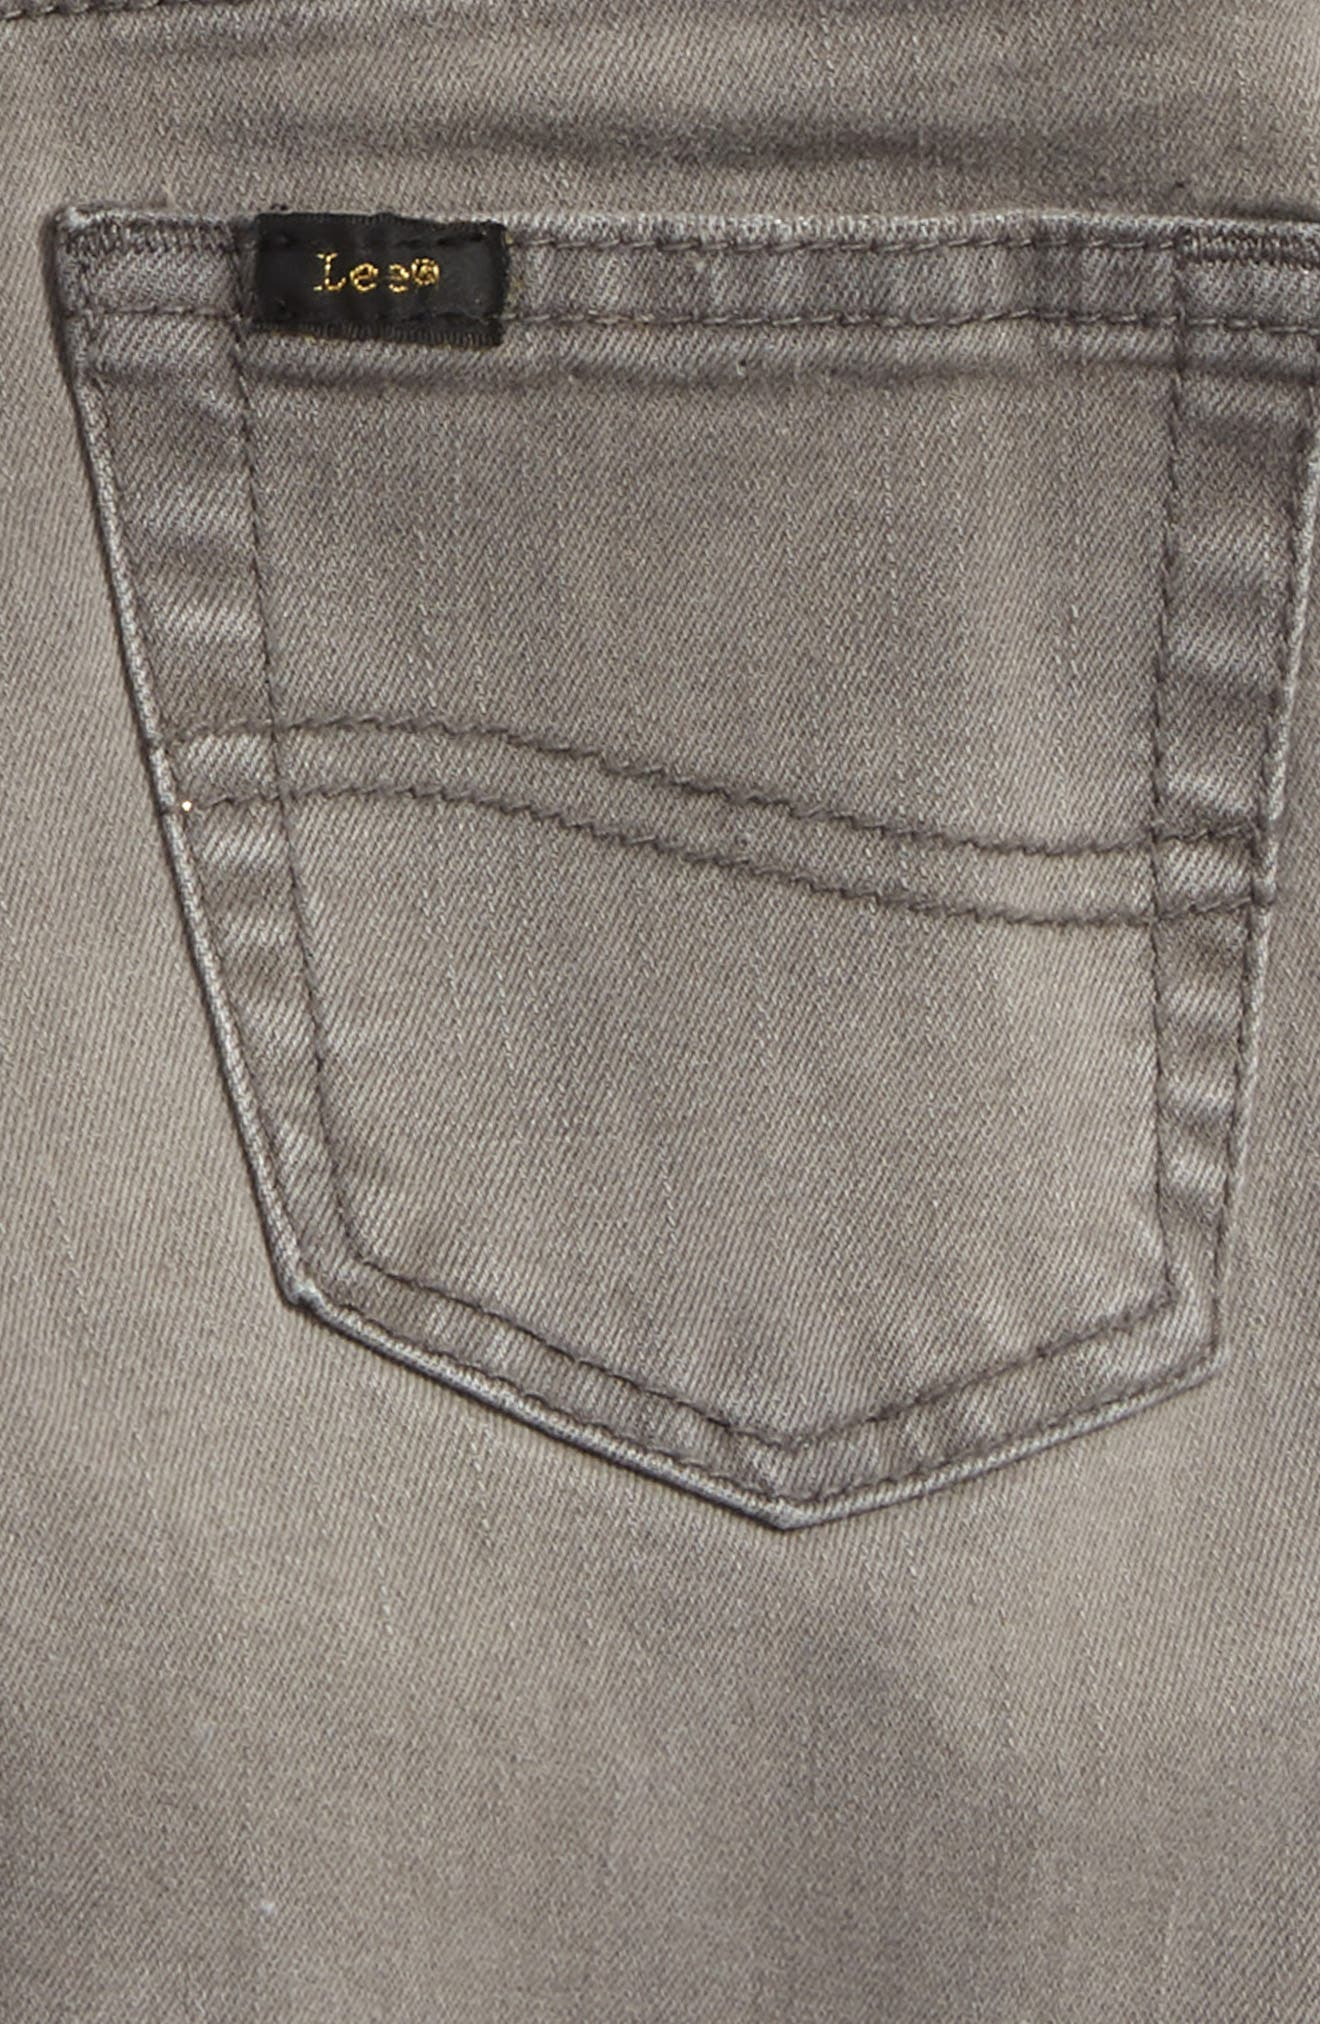 Stretch Denim Roll Cuff Shorts,                             Alternate thumbnail 3, color,                             Wrecked Boat Grey